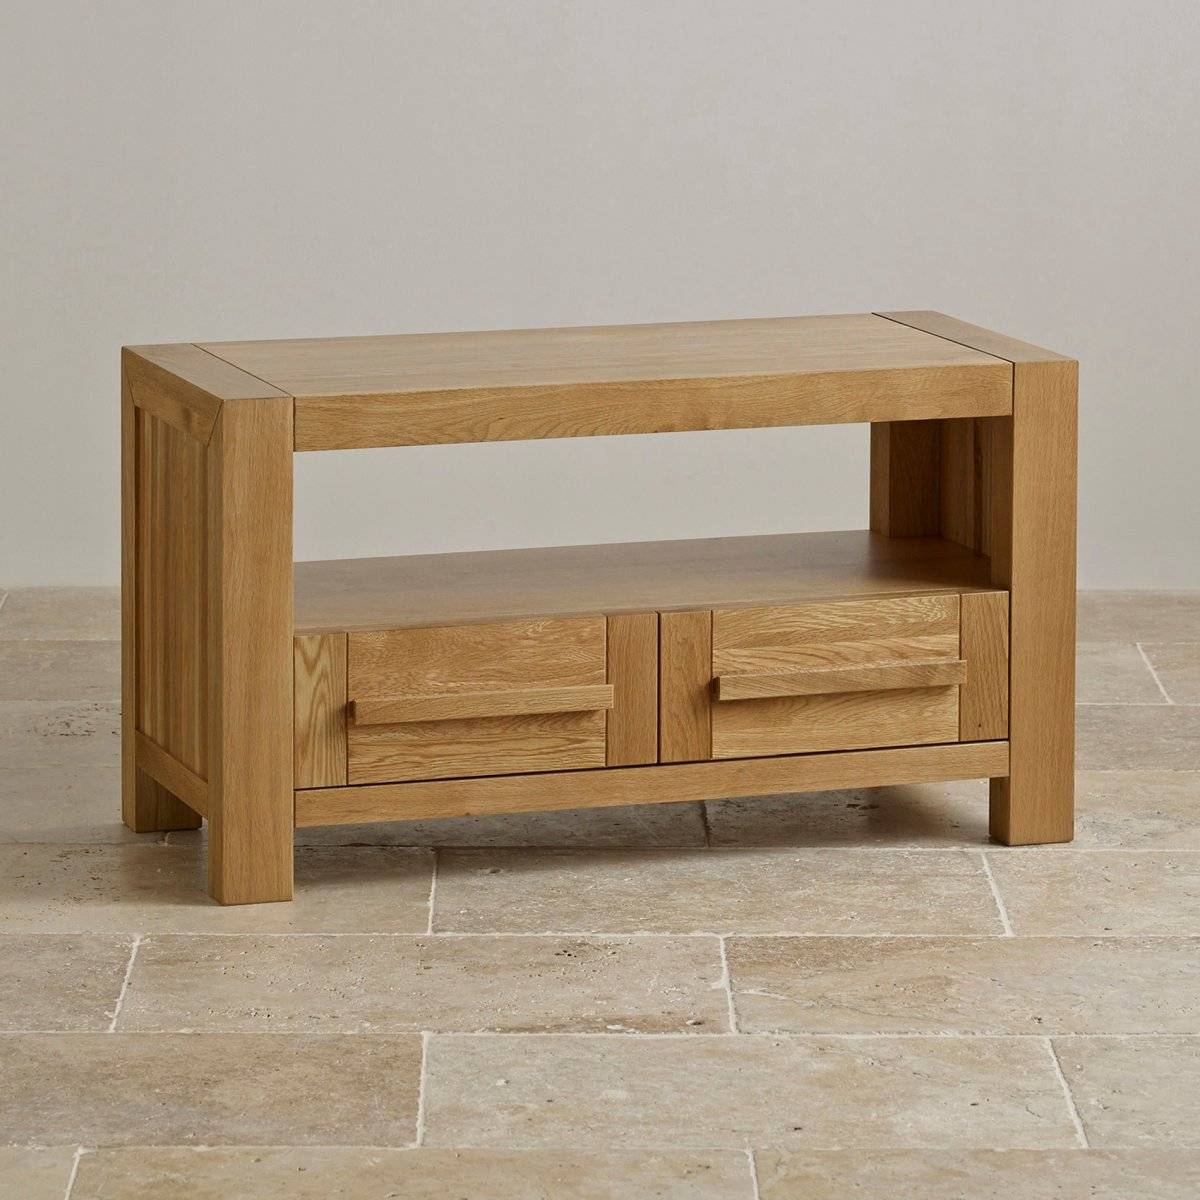 Fresco 2 Drawer Tv Cabinet In Solid Oak | Oak Furniture Land for Small Tv Cabinets (Image 2 of 15)